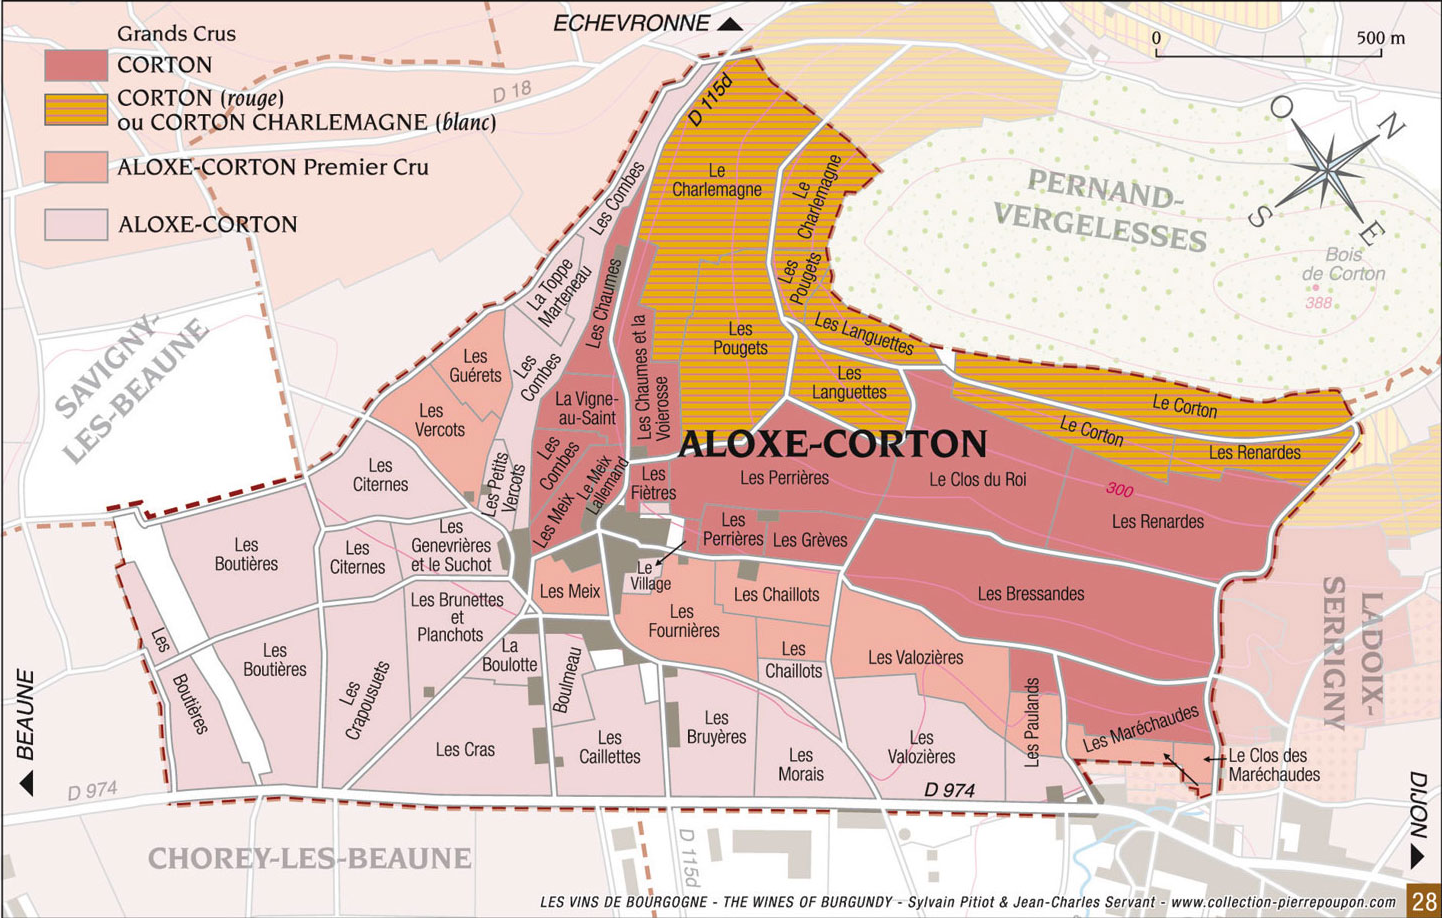 map of aloxe-corton wine region of burgundy